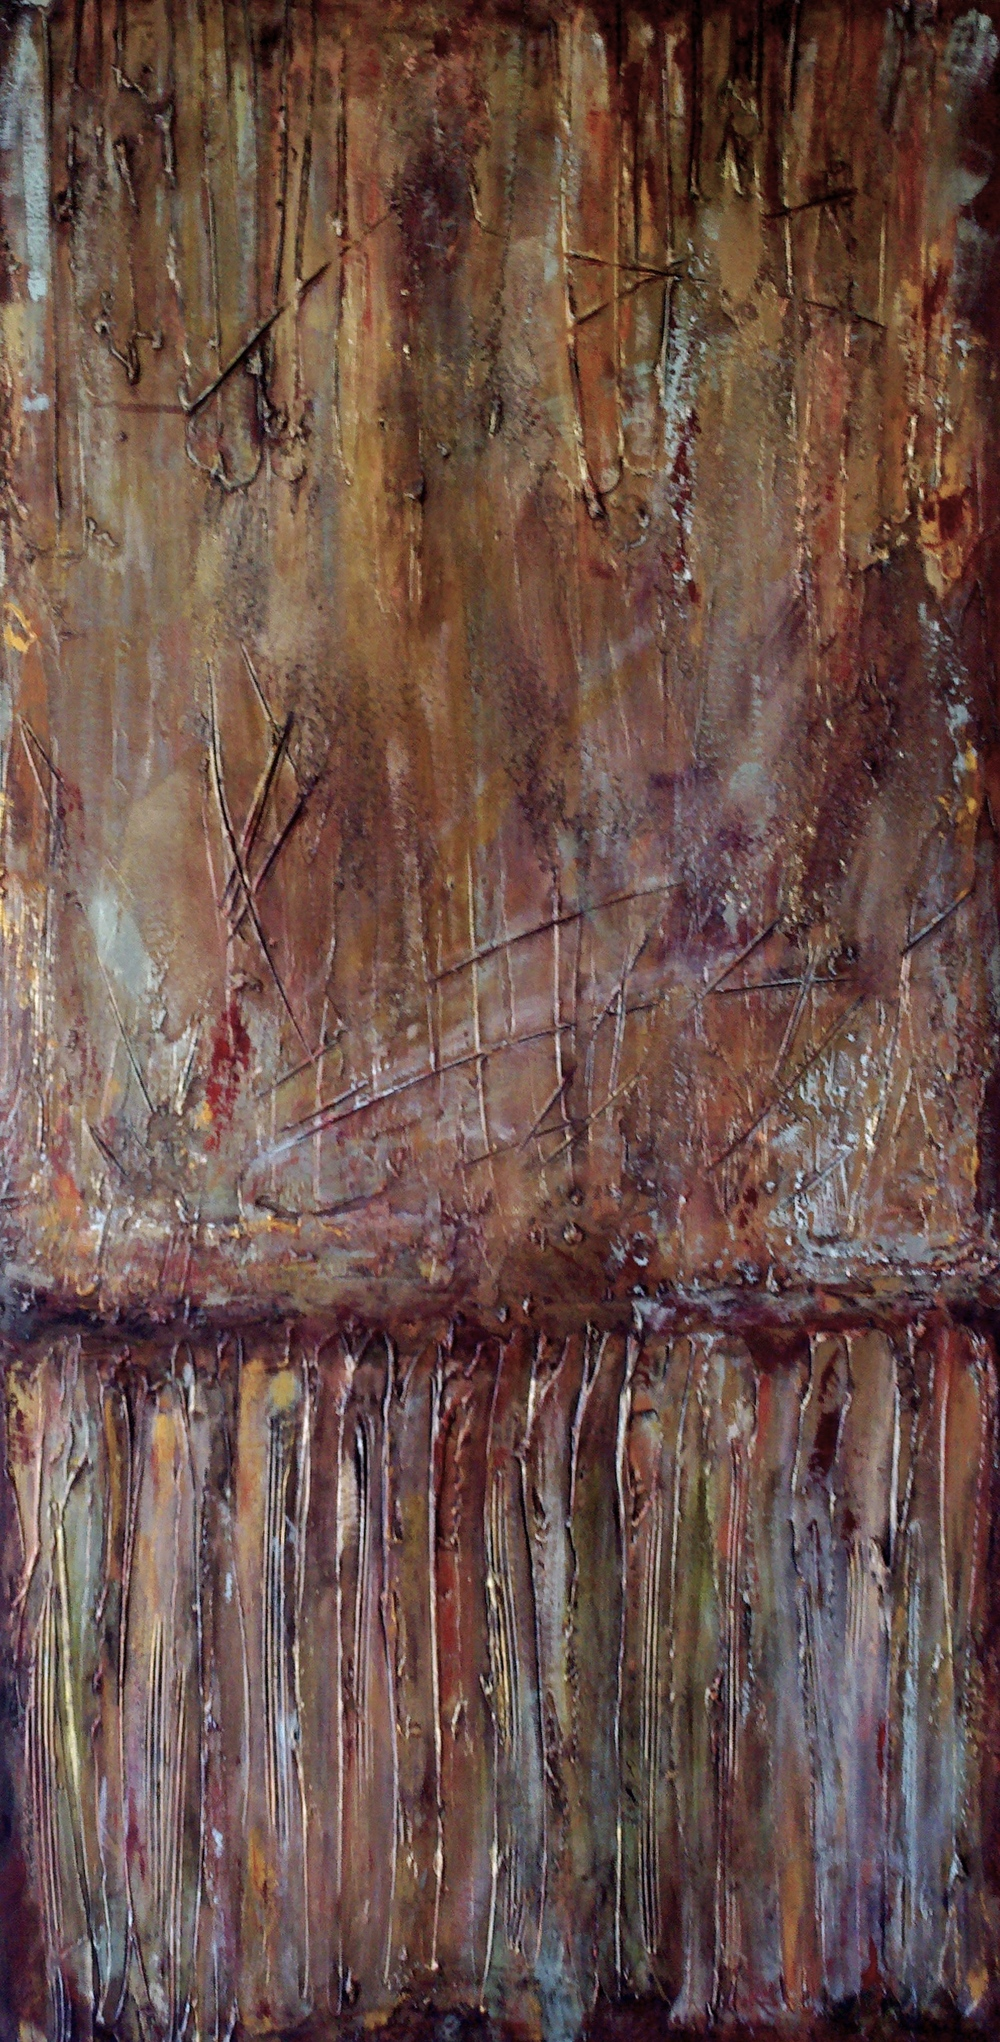 The Greeting  48 x 24 x 1.5 inches  mixed media on canvas  $2400